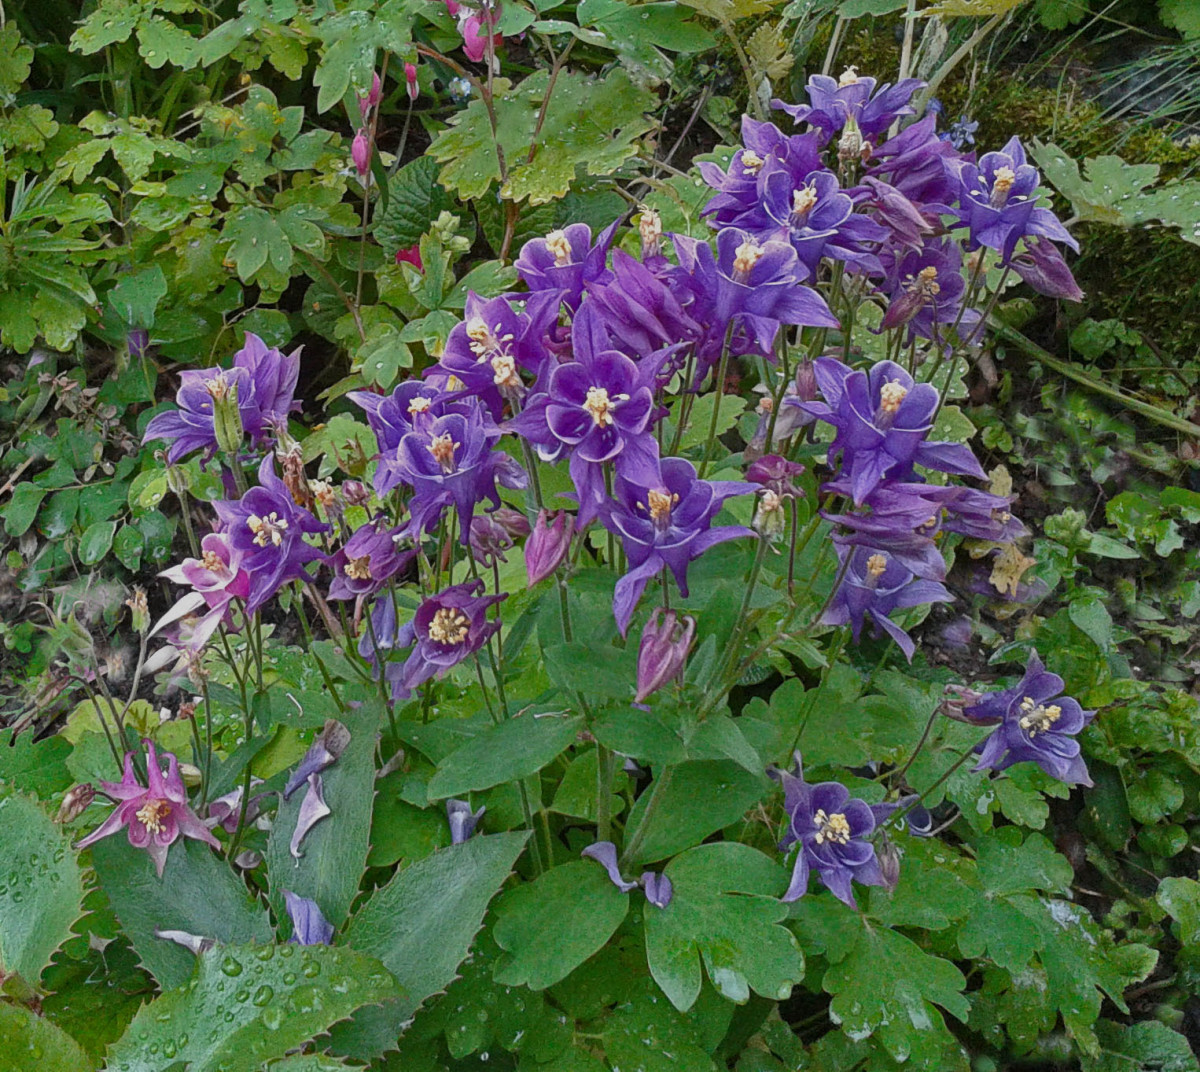 Aquilegia have delicate, bell-shaped flowers and attractive foliage.